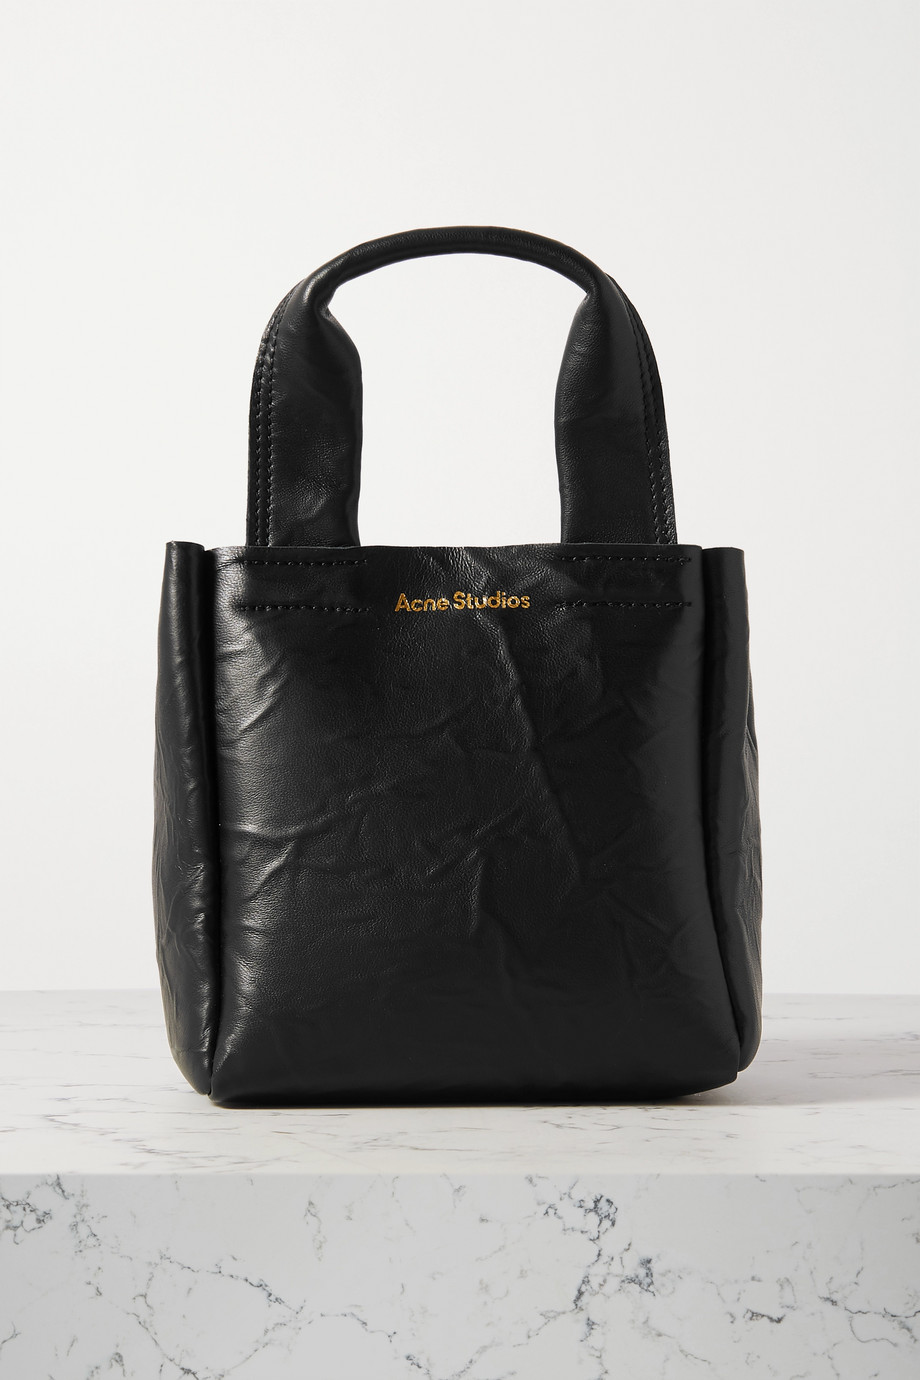 Acne Studios Mini crinkled-leather tote